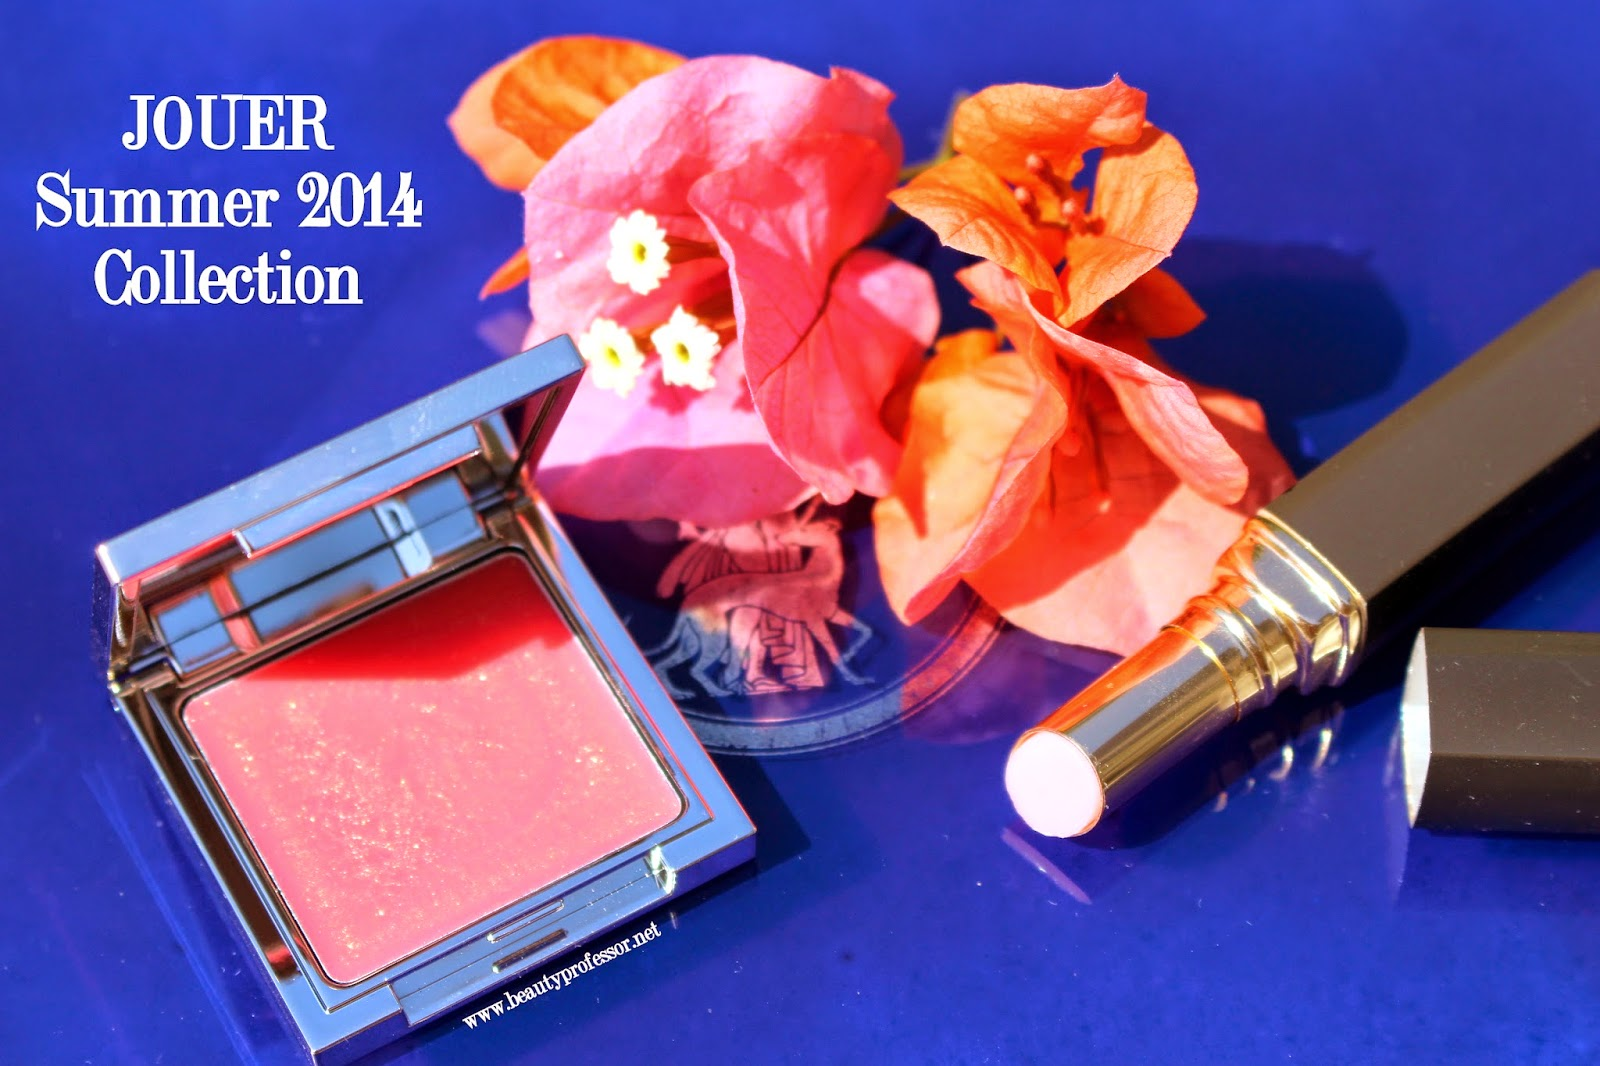 jouer summer 2014 products